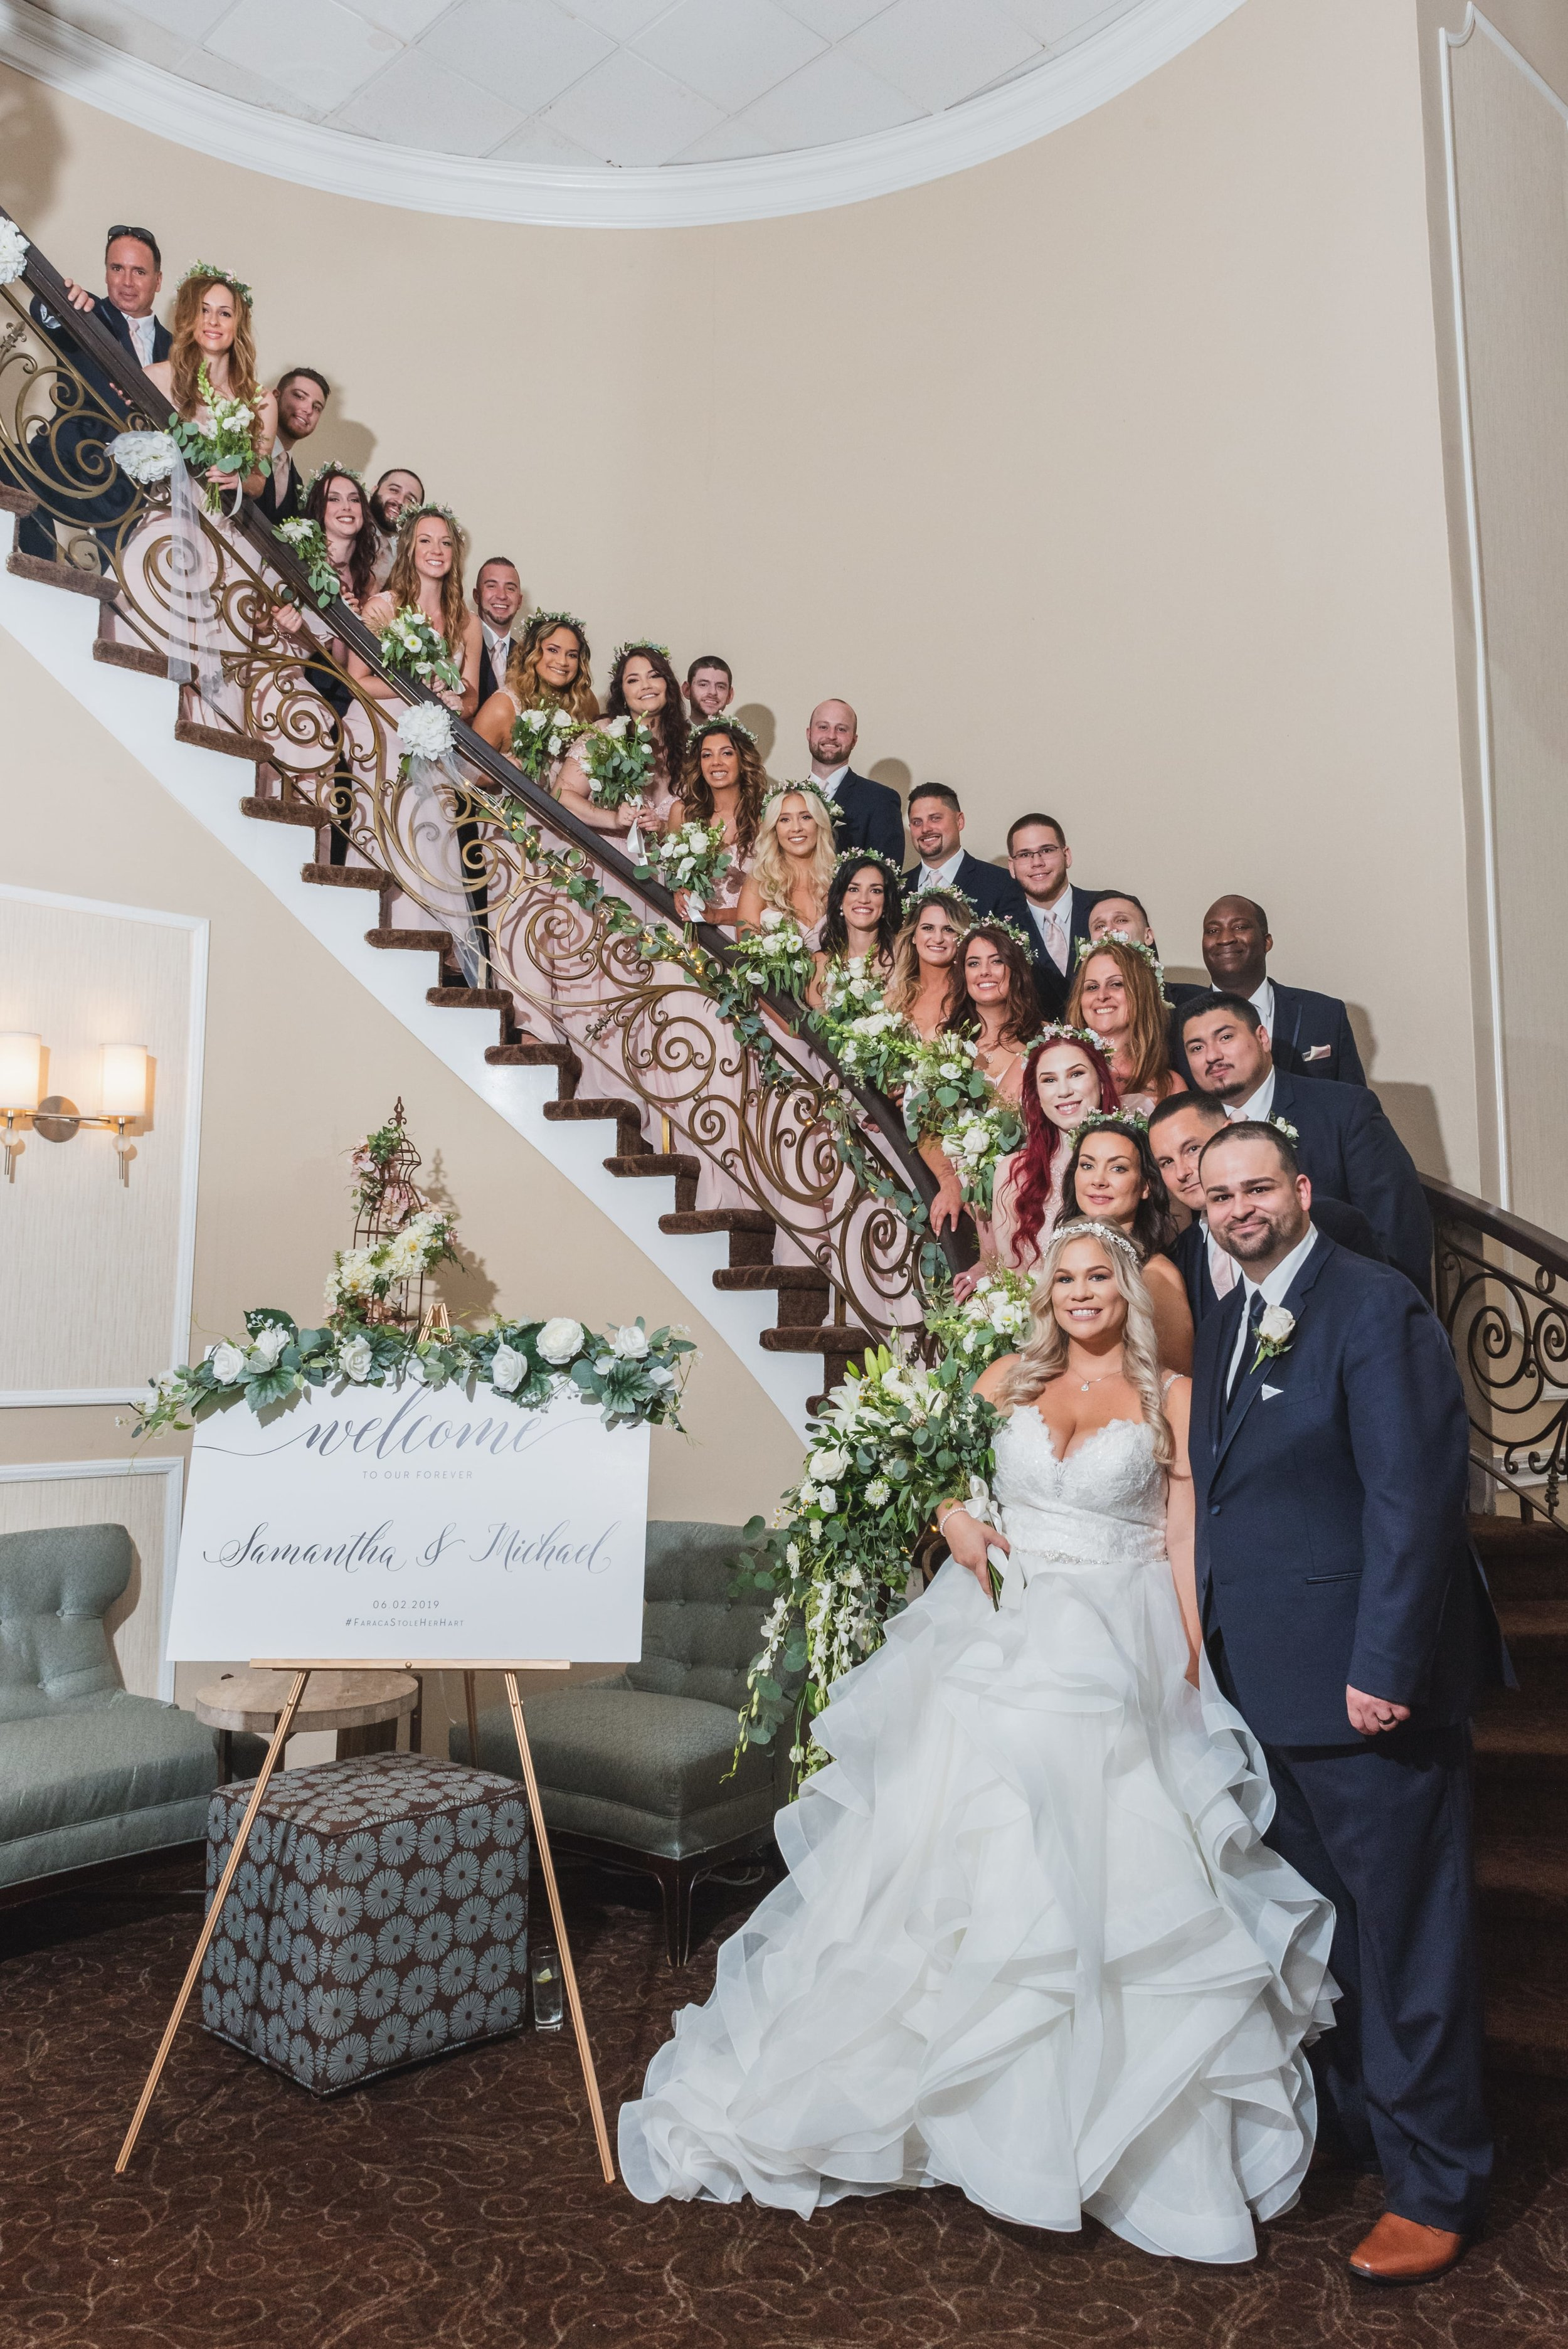 A large bridal party lining a curving staircase from top to bottom.